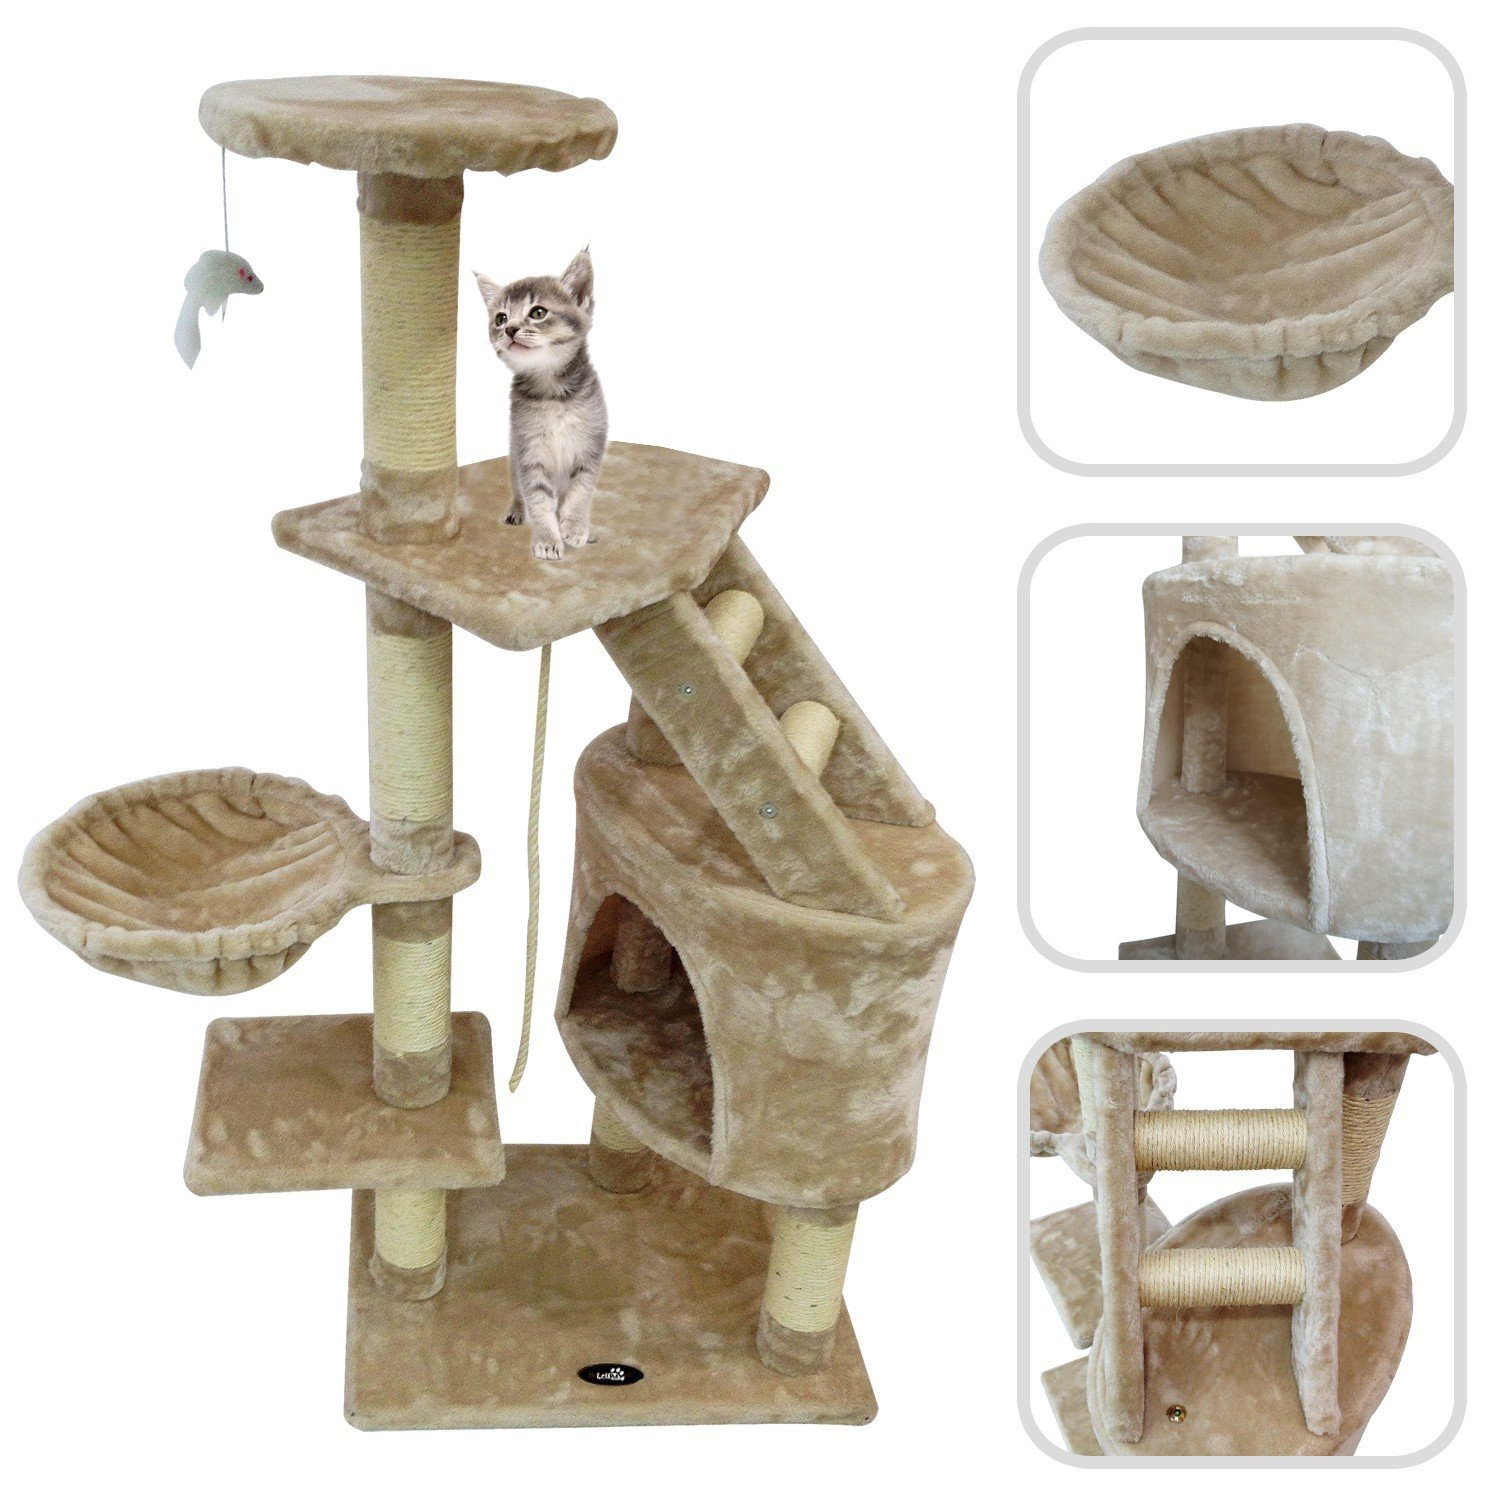 Lolipet - Cat tree with scratching post - Scratching post made of natural sis